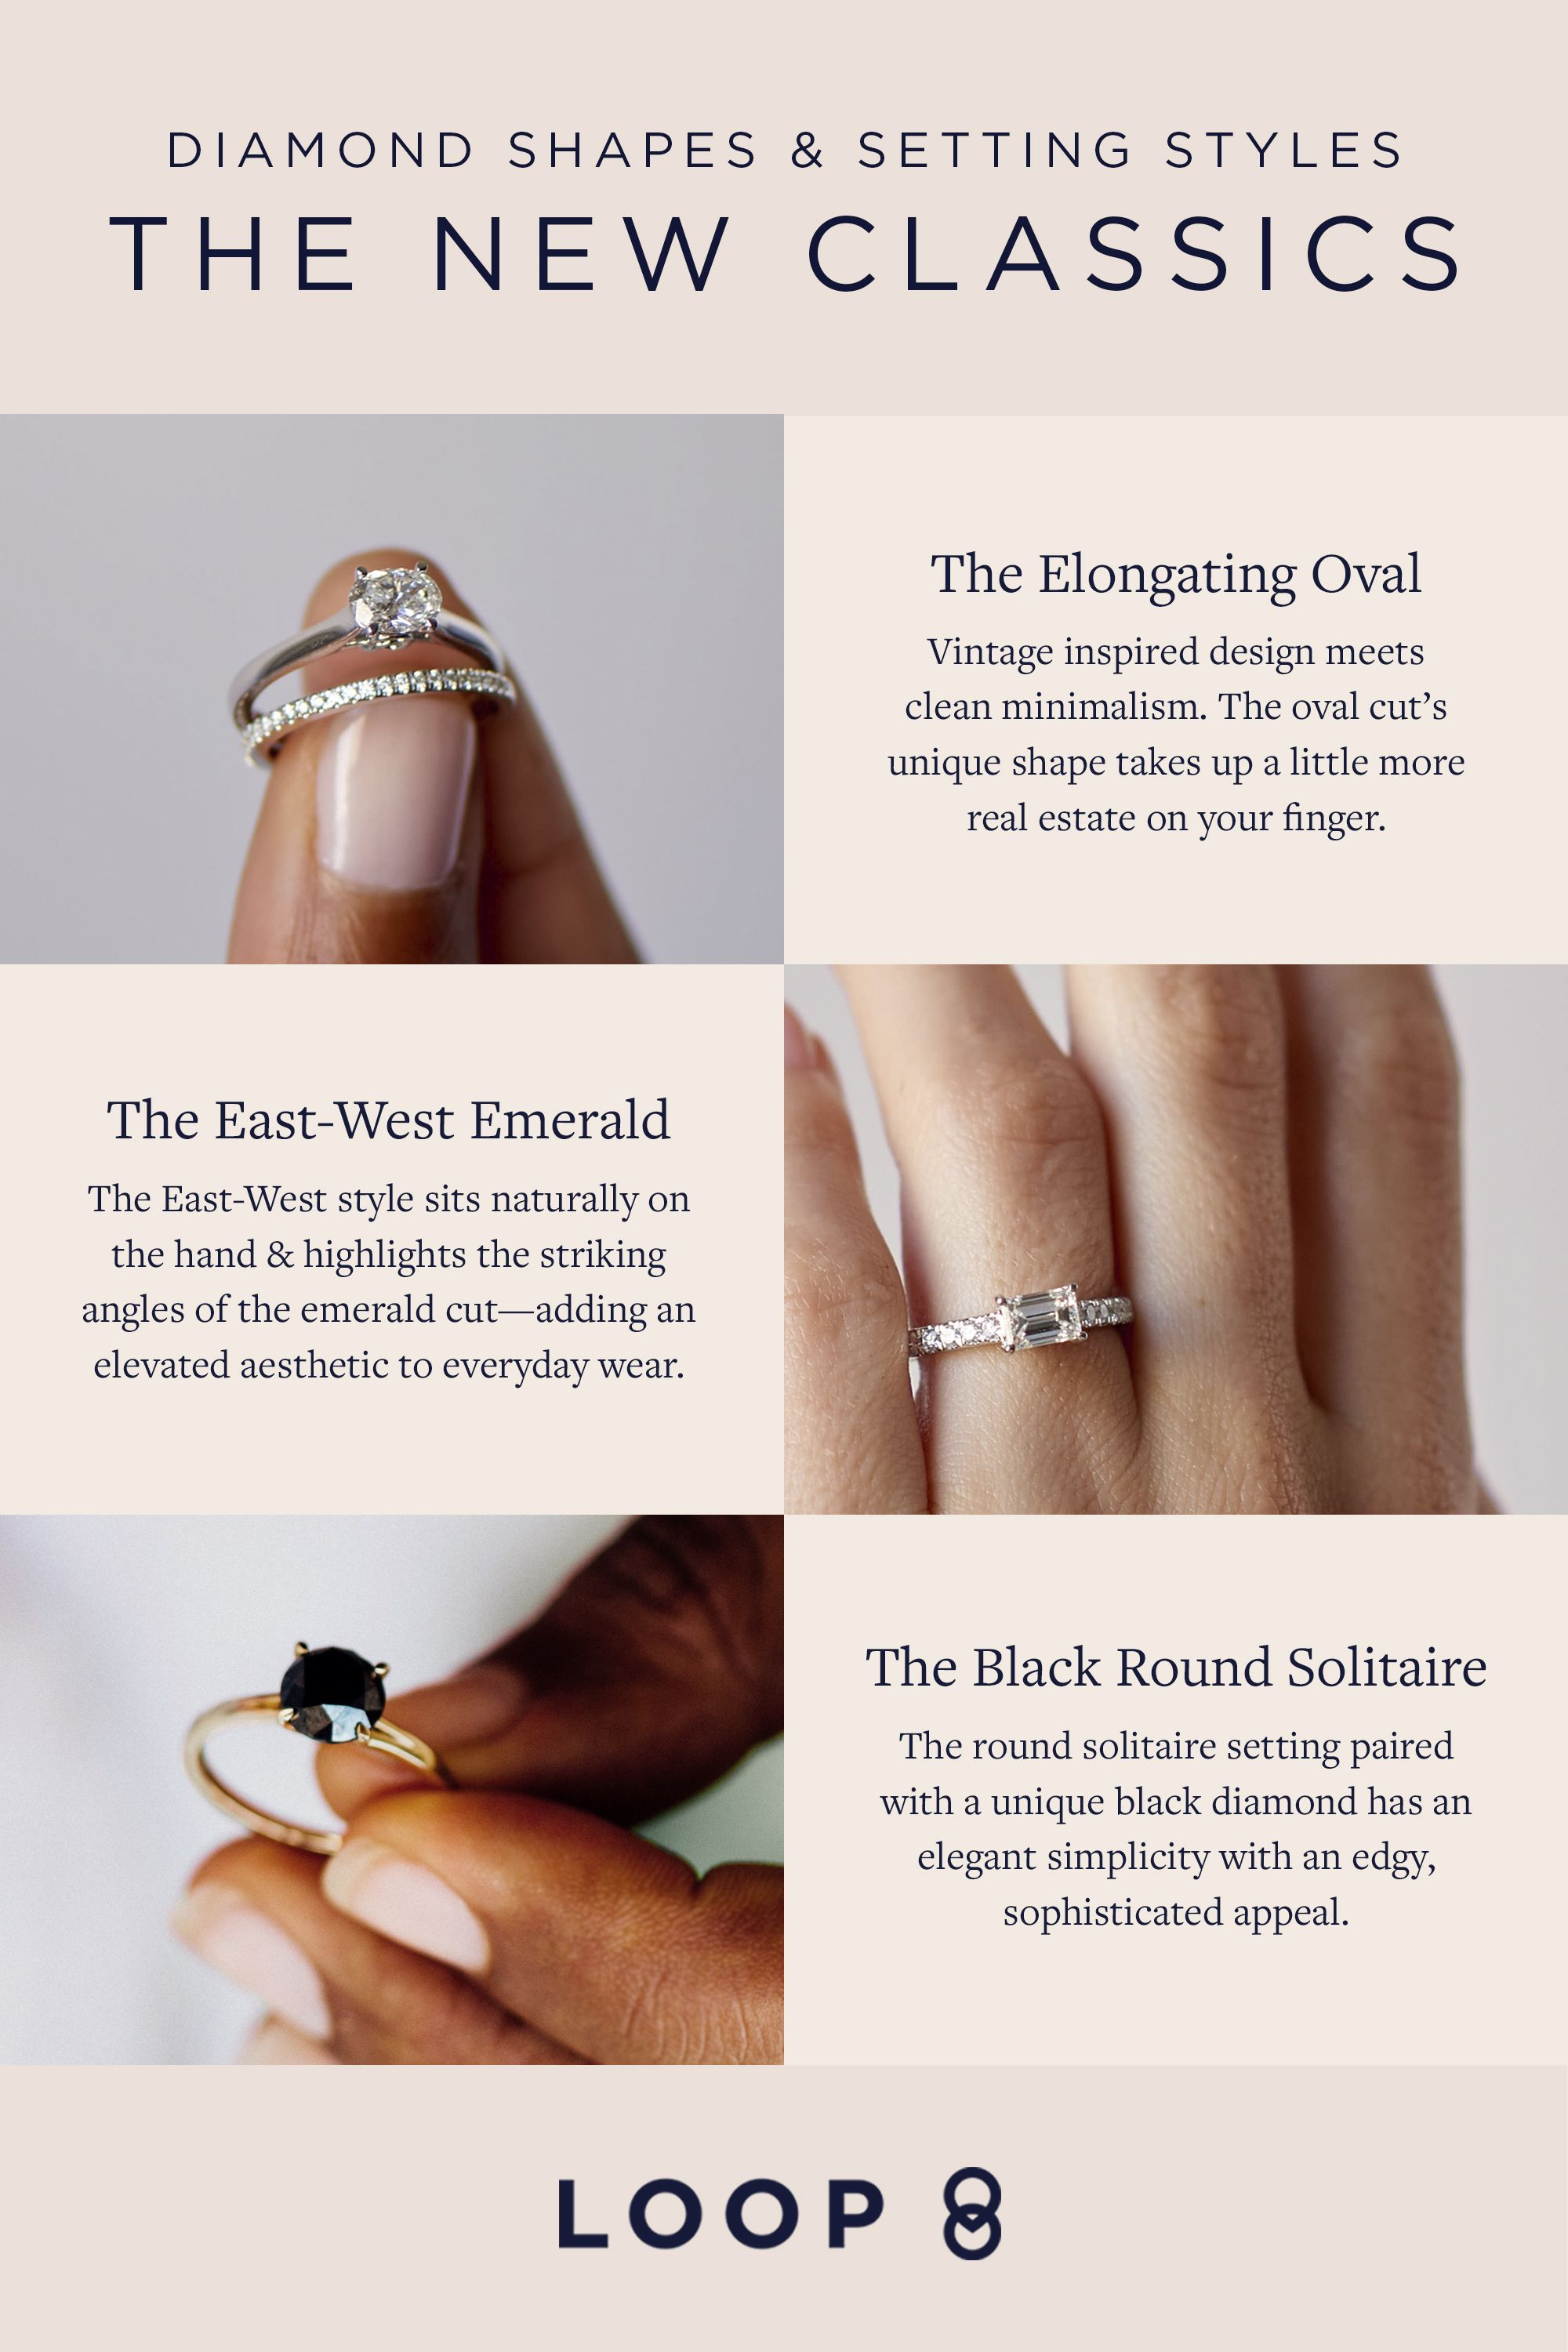 Find The Diamond Shape And Engagement Ring Setting Style For Your Unique Story Loop Makes Rings For Modern Re Engagement Engagement Ring Settings Lily Wedding